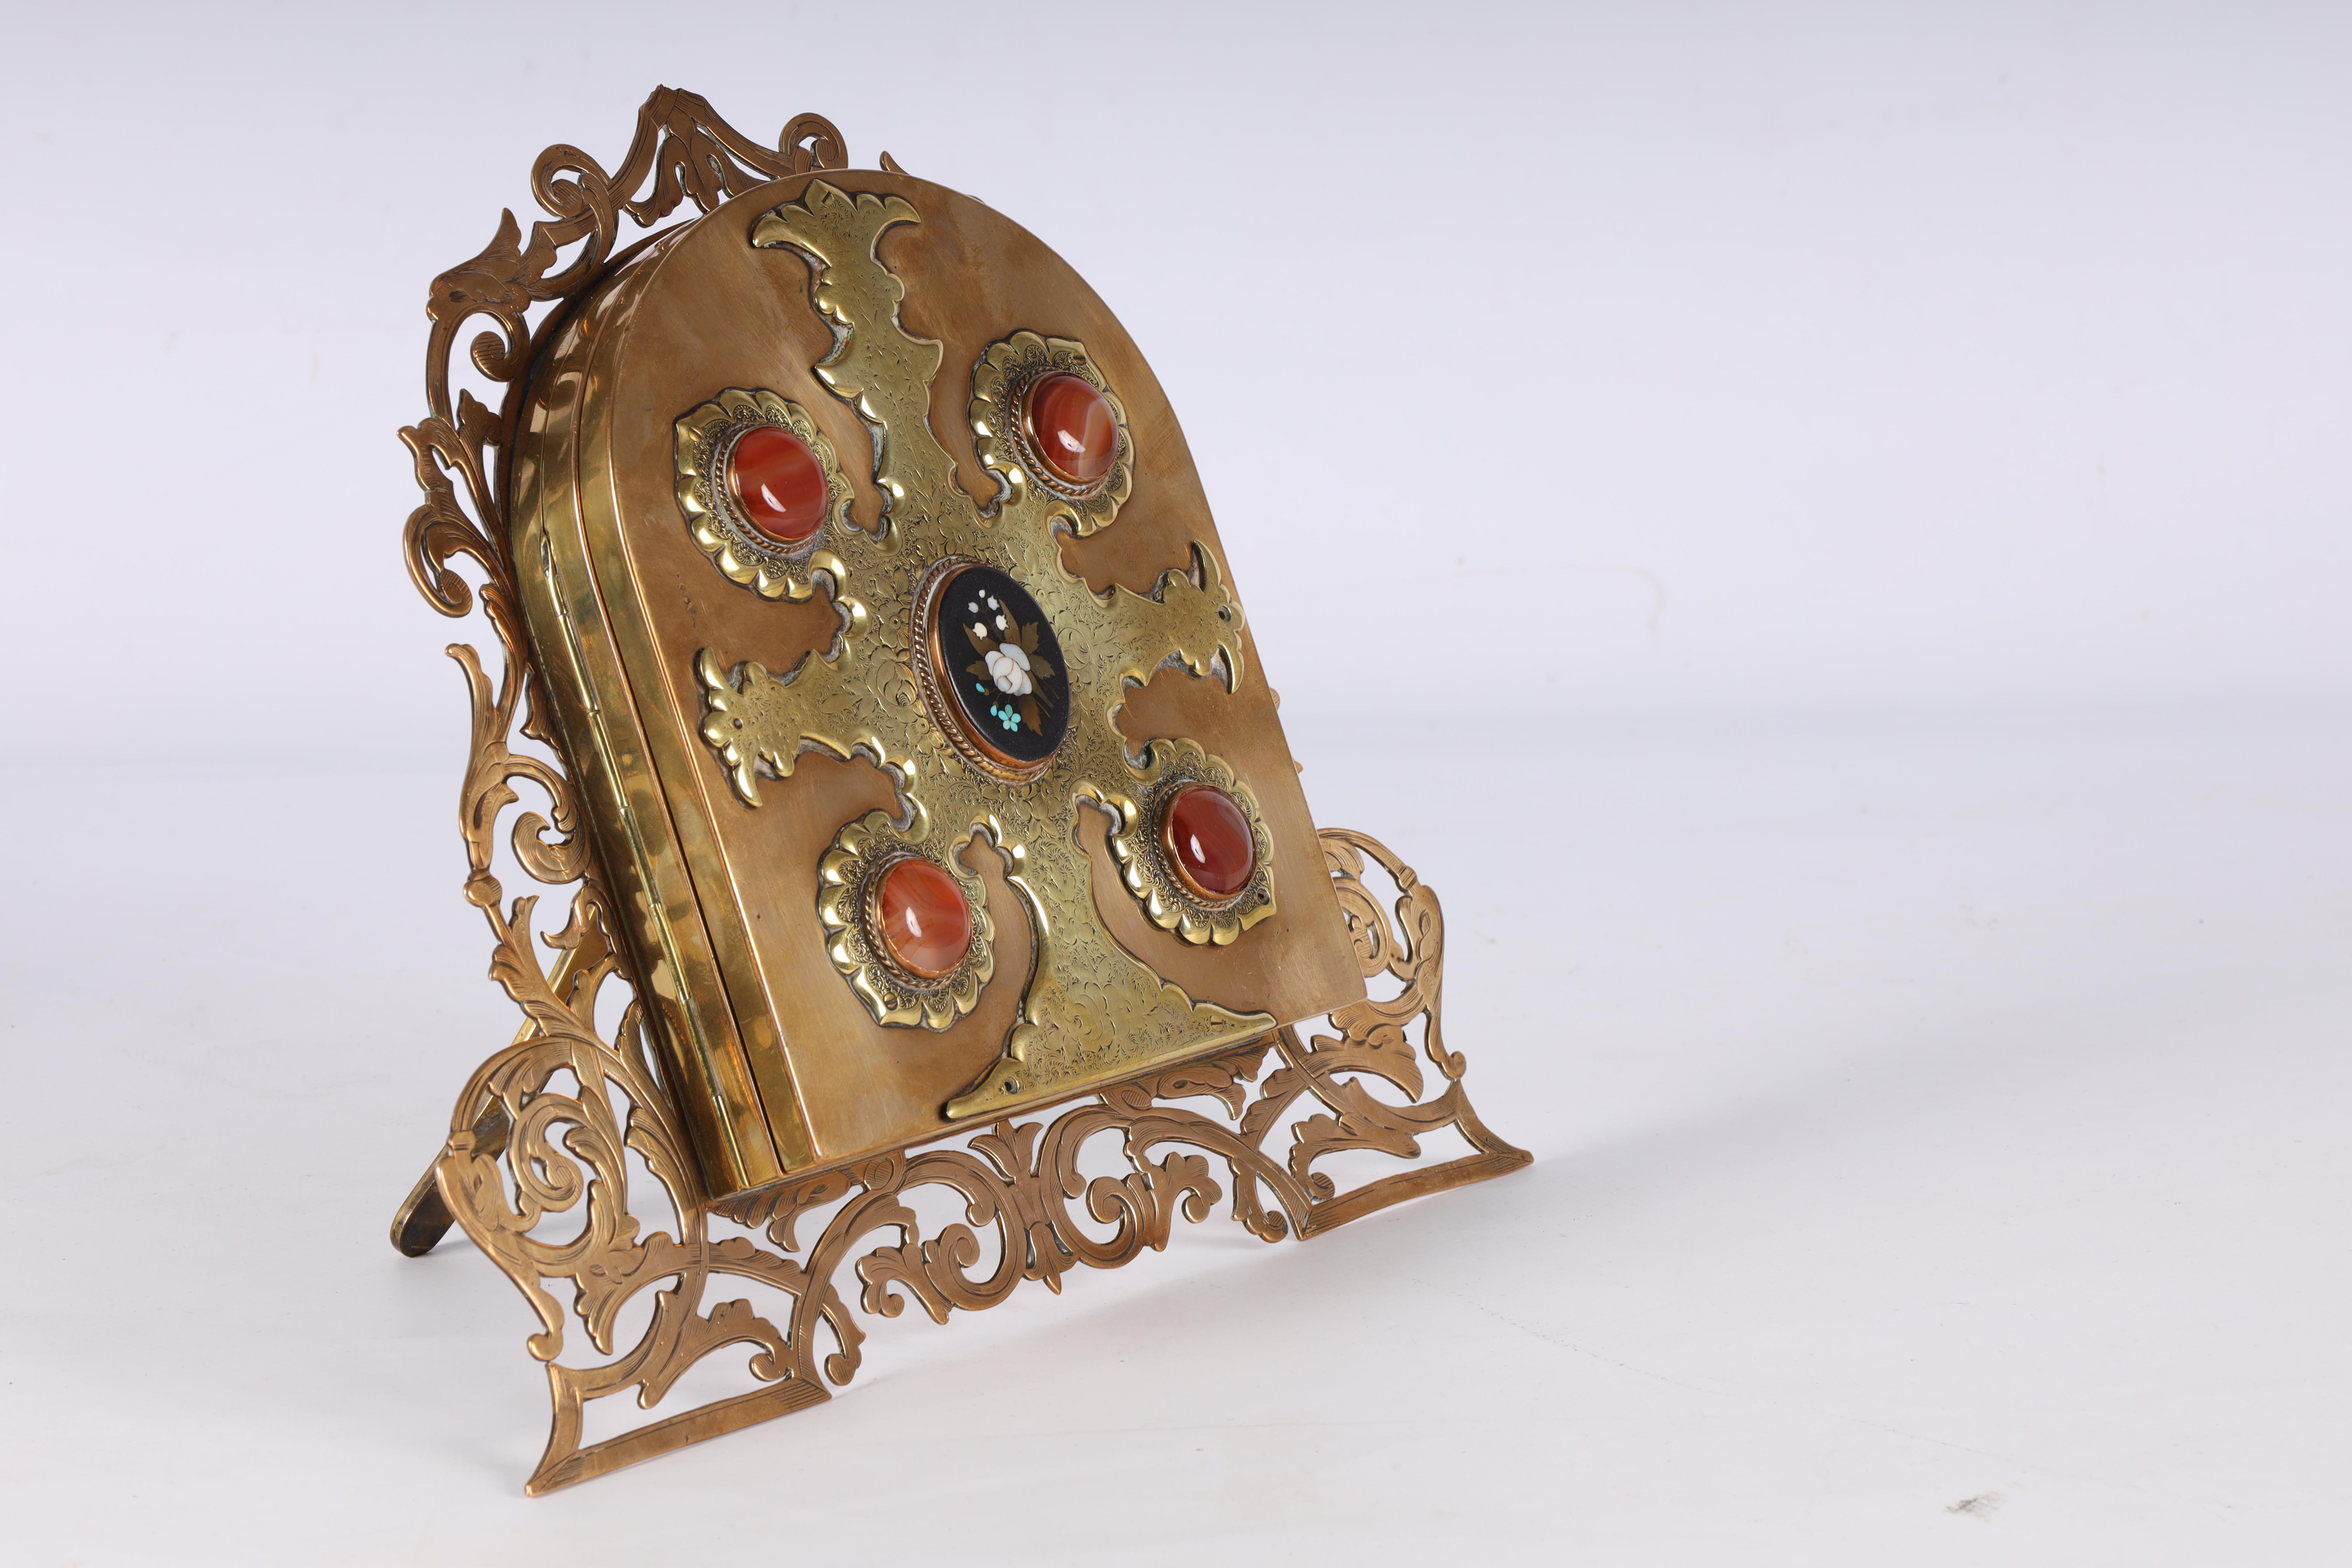 A LATE 19TH CENTURY PIERCED AND ENGRAVED BRONZE FOLDING PHOTOGRAPH FRAME the front with four - Image 6 of 8